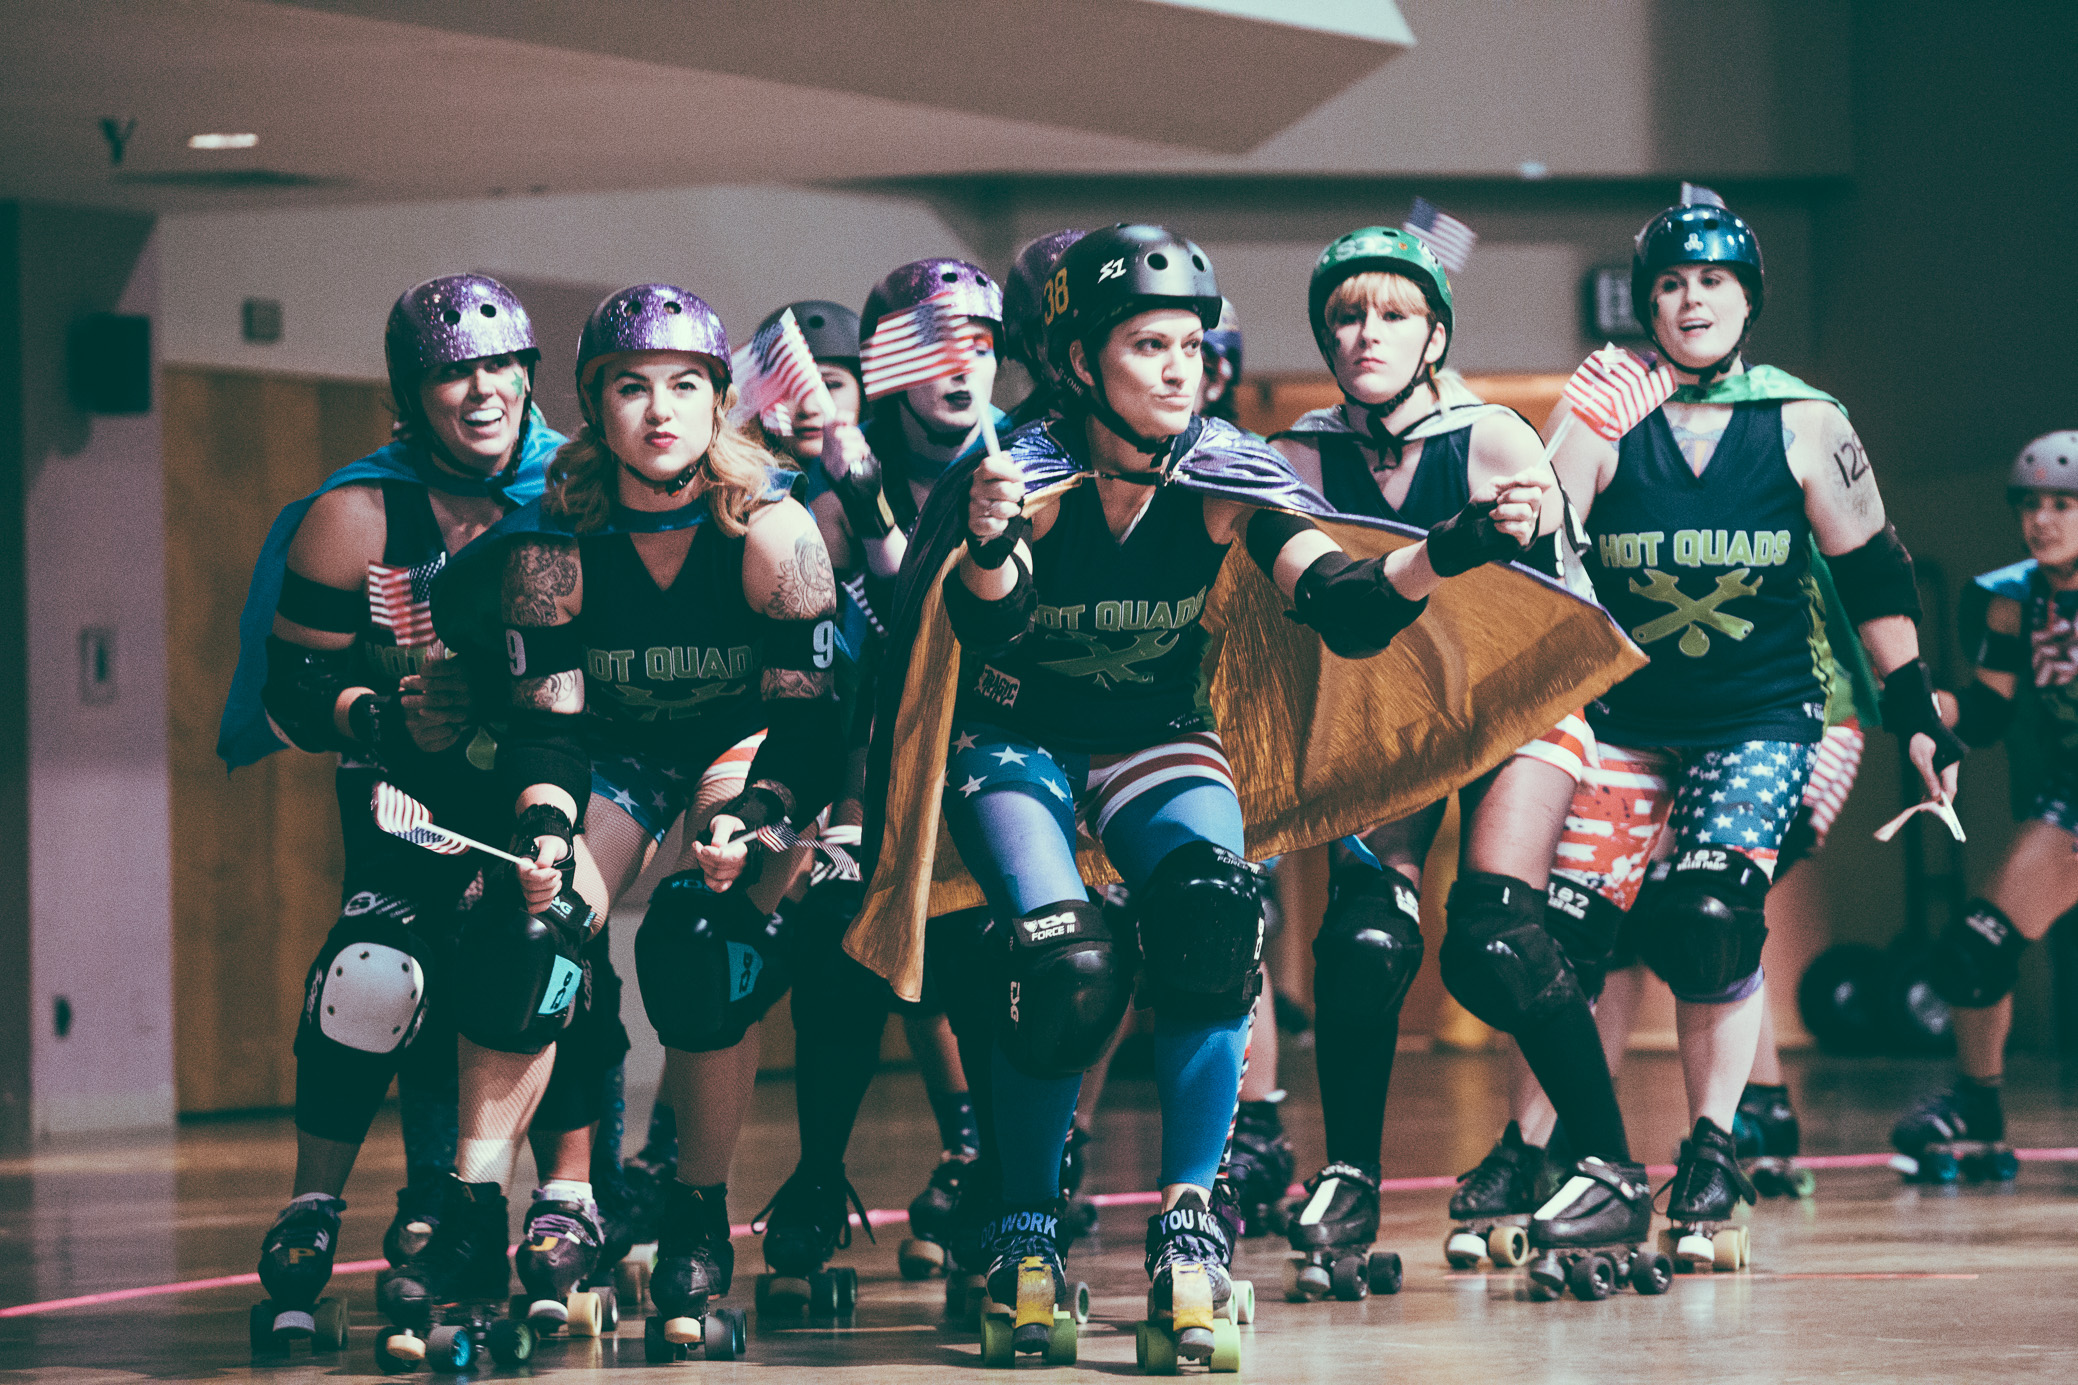 Tragic City Rollers: Hot Quads vs. Rollsheviks